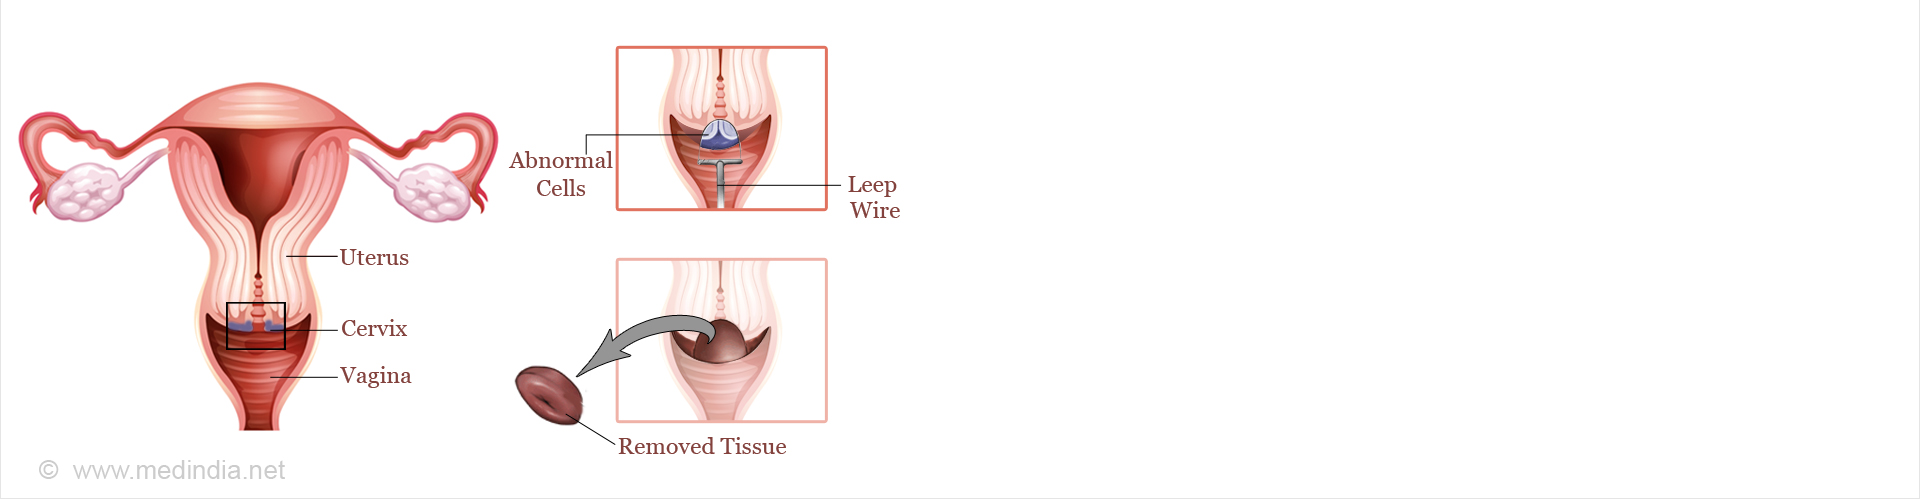 LEEP (Loop Electrosurgical Excision Procedure)